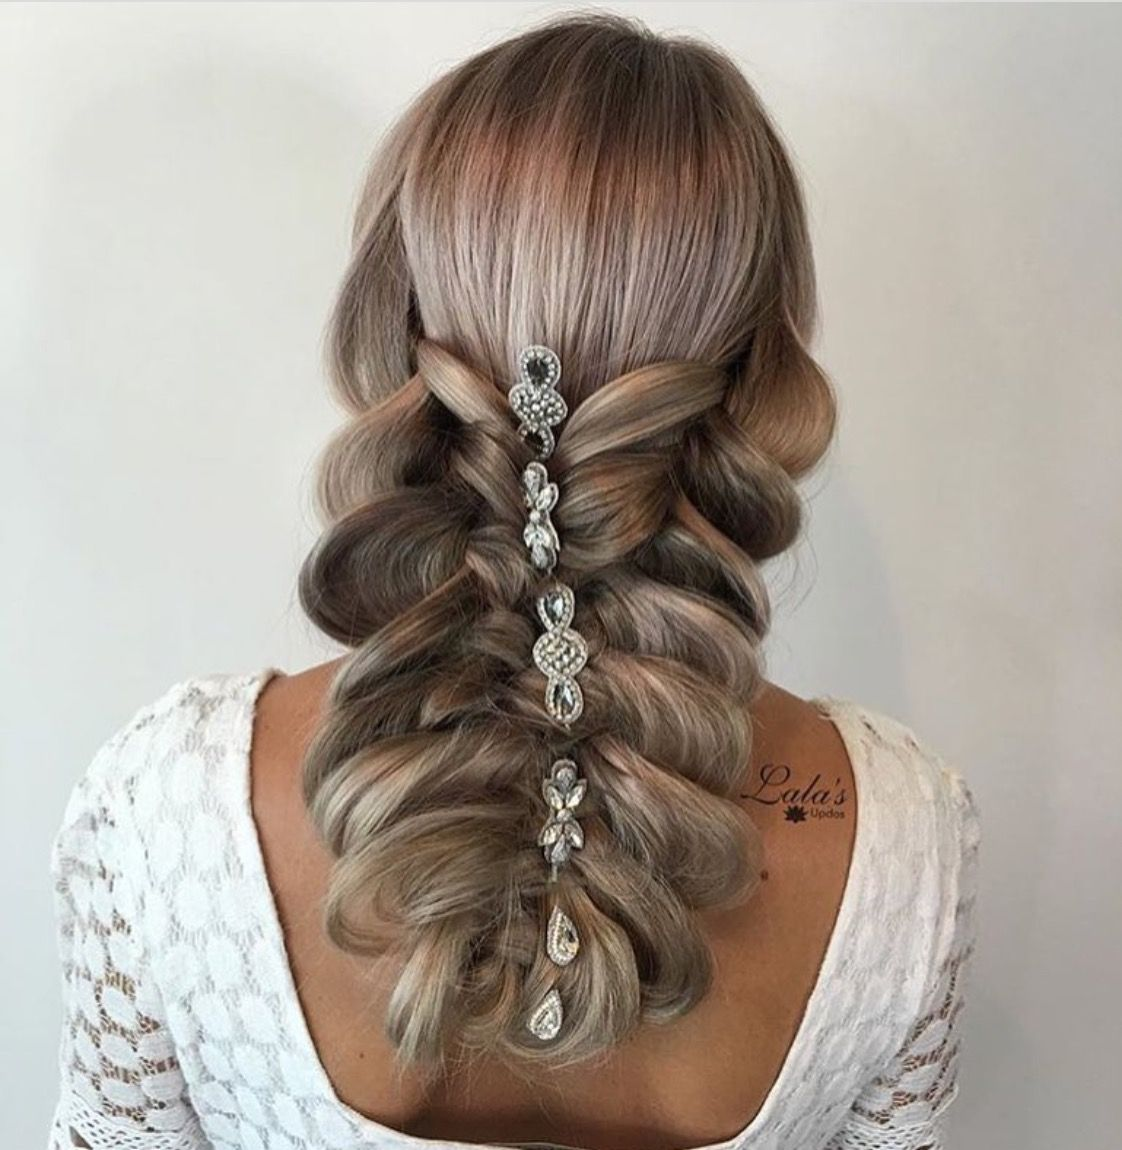 Braids and long hair redken pureology paul mitchell and more